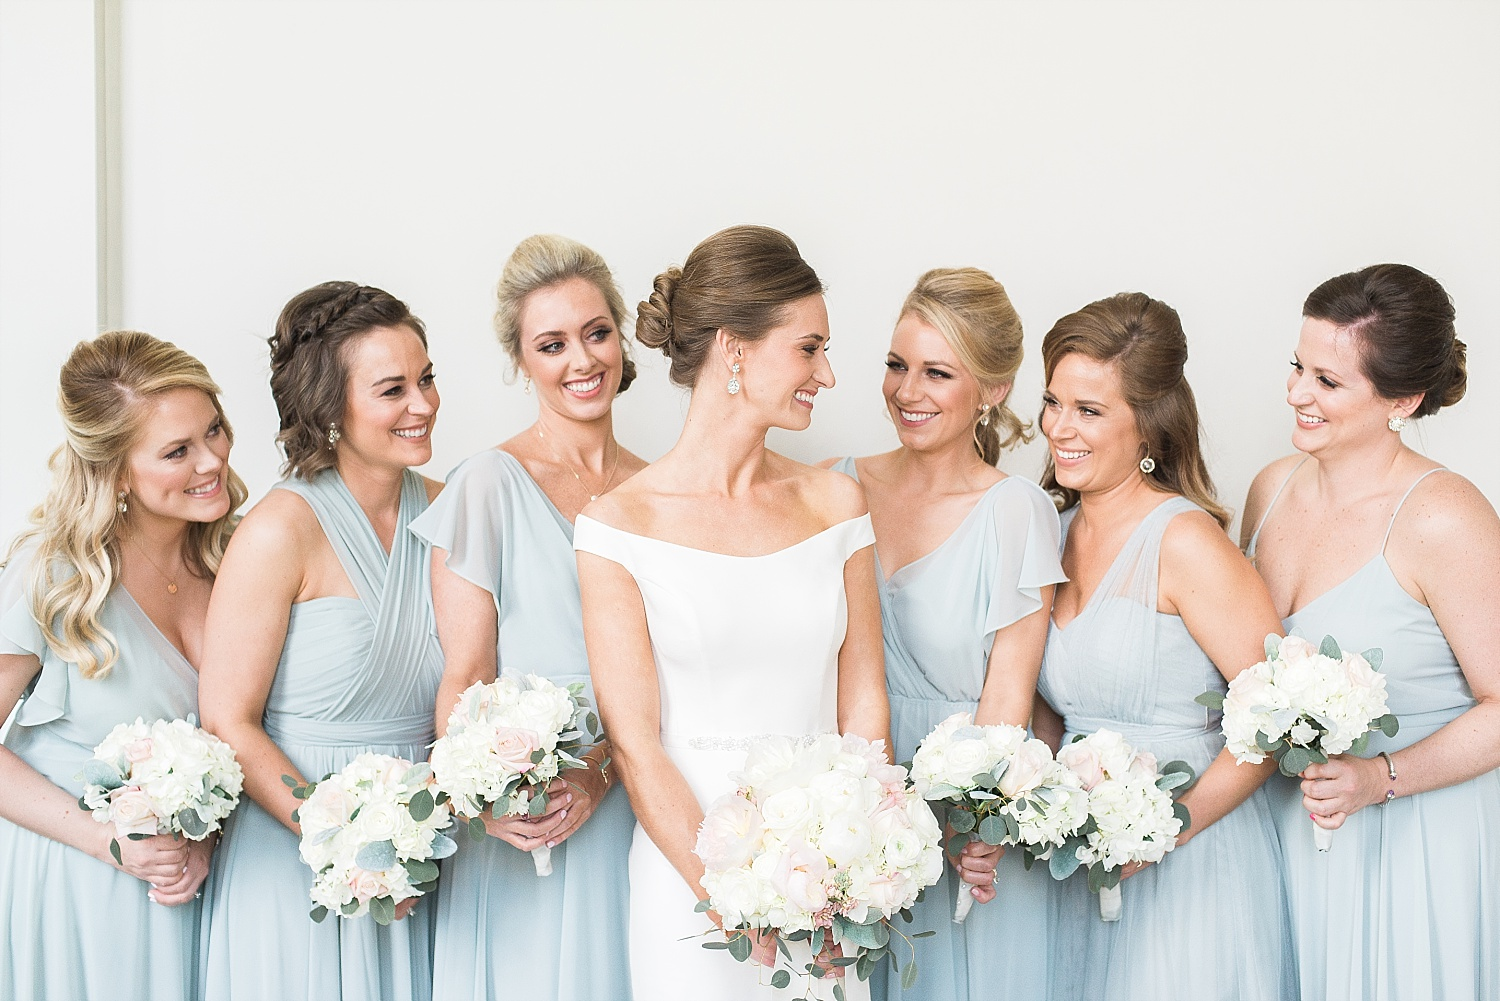 The prettiest group of bridesmaids!